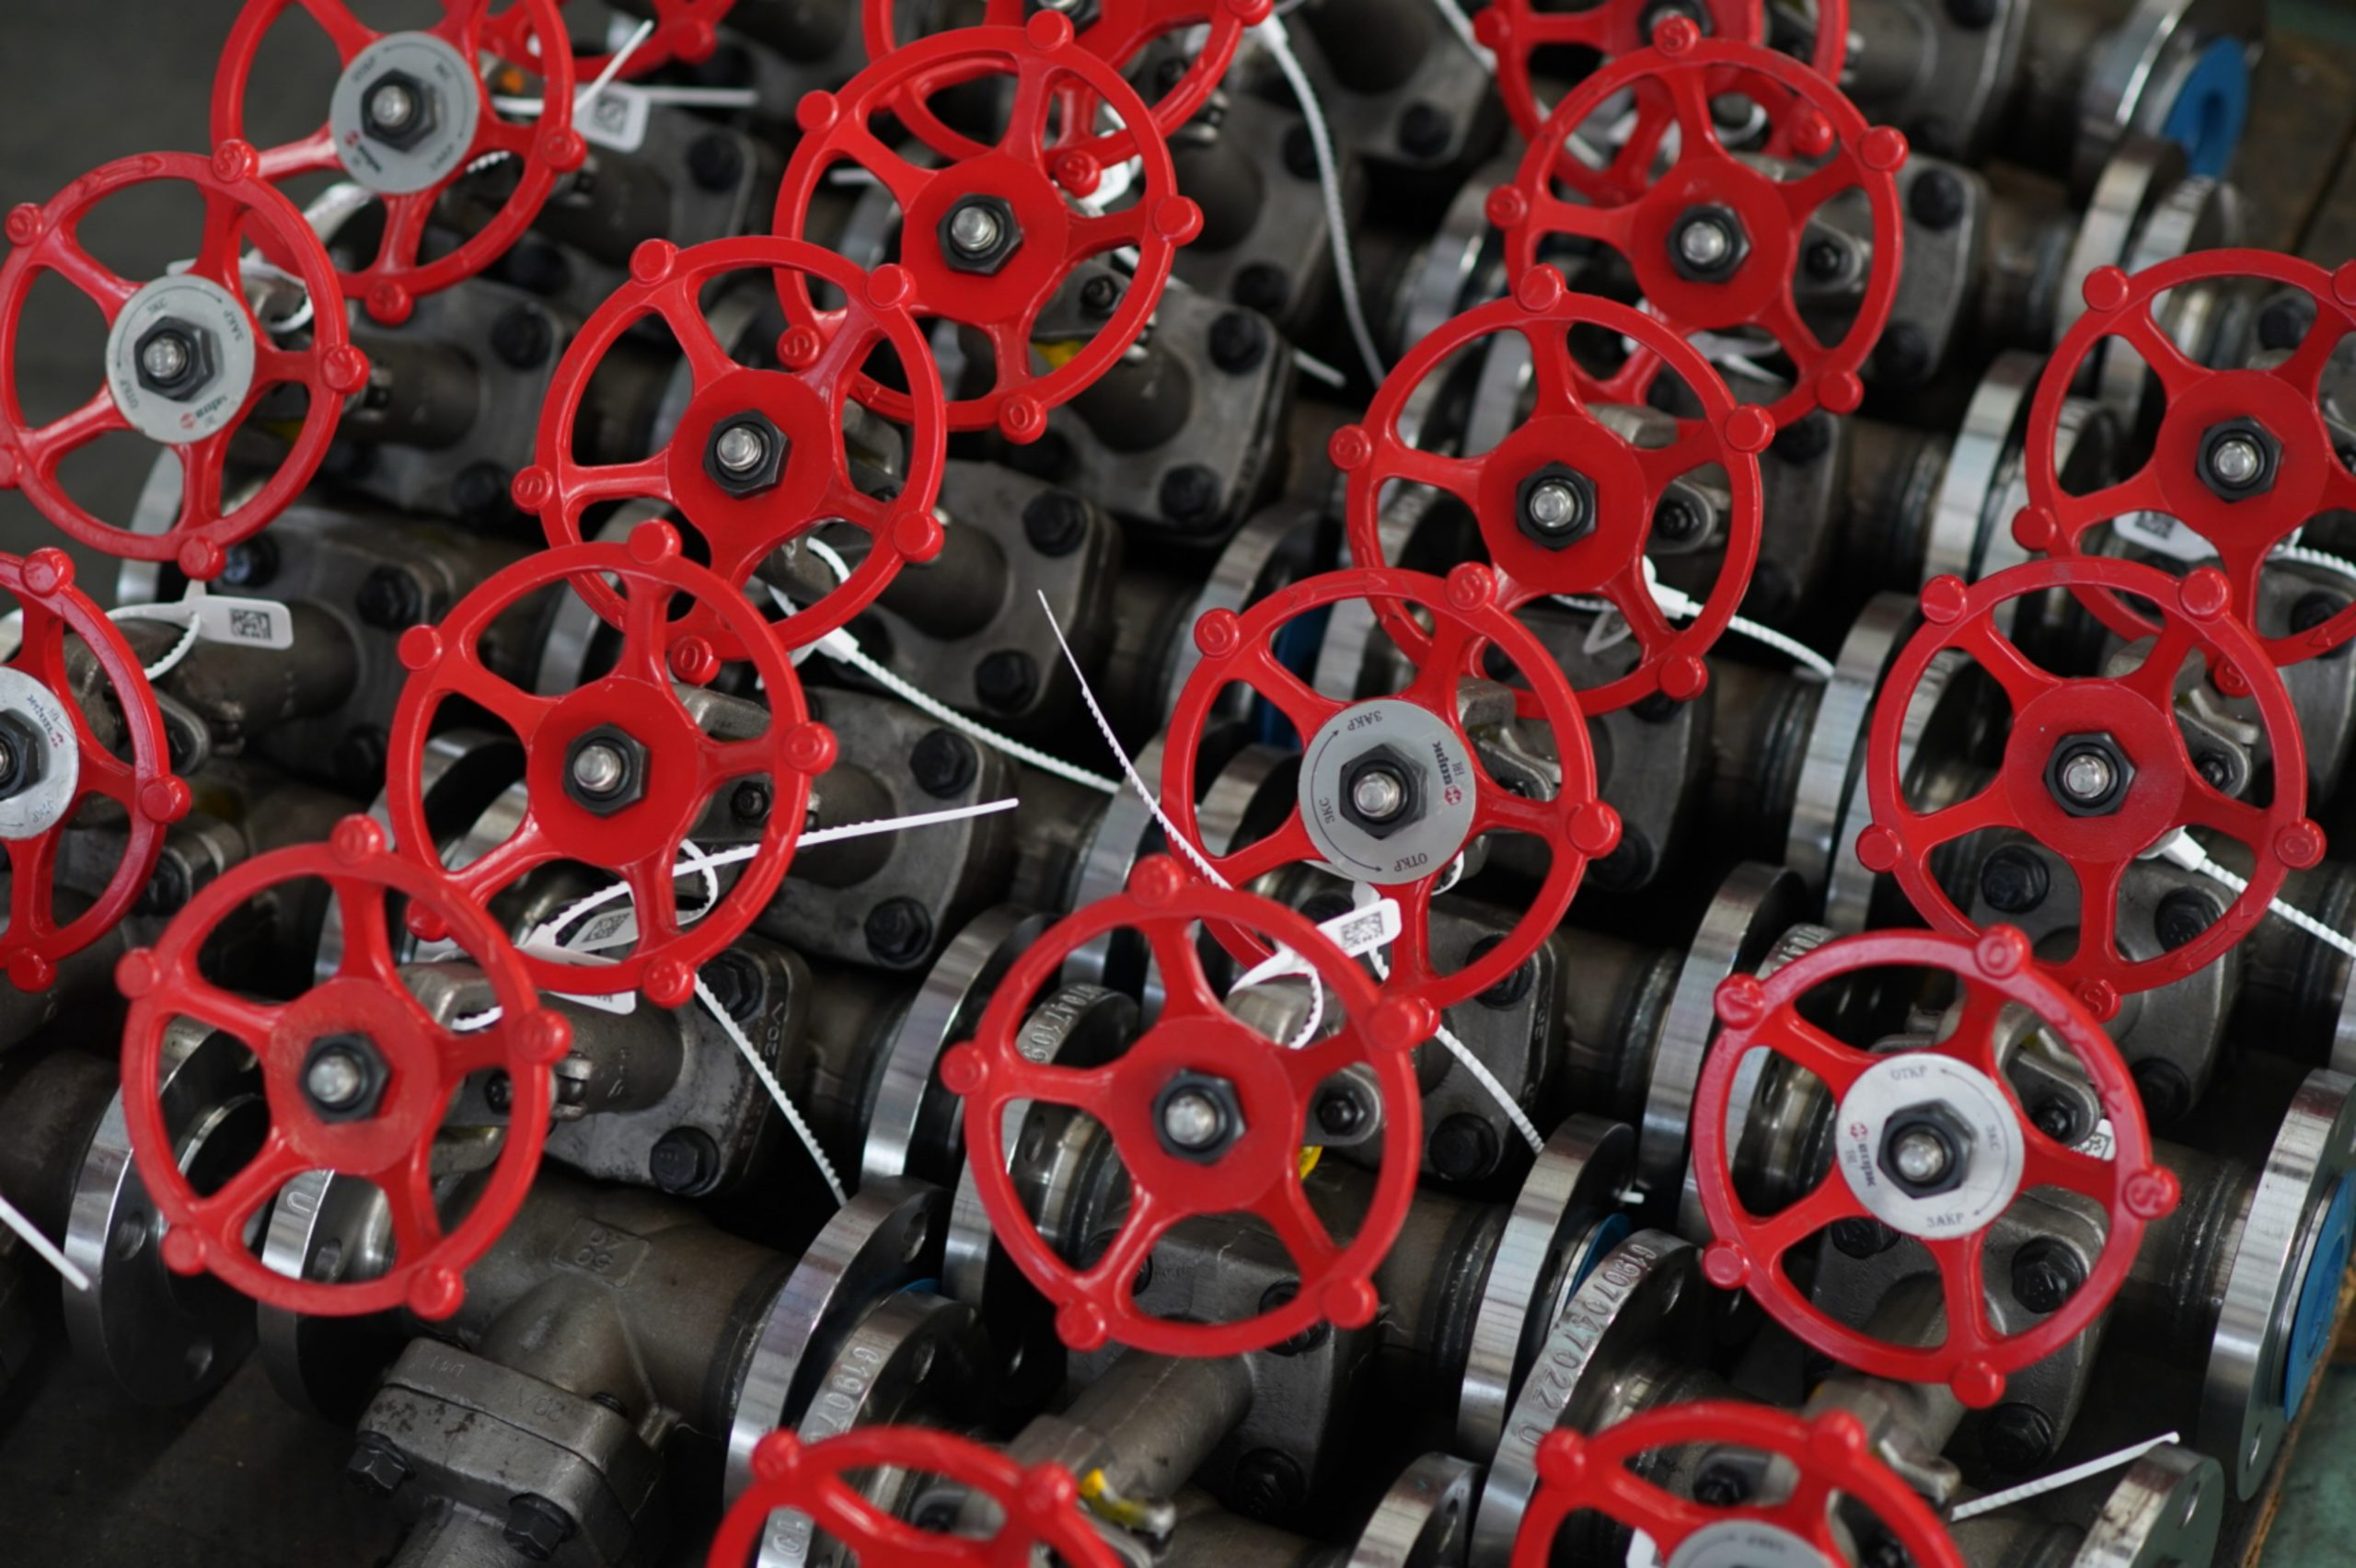 Tight sealing red painted gate valves ready to be delivered from the gate valve manufacturer